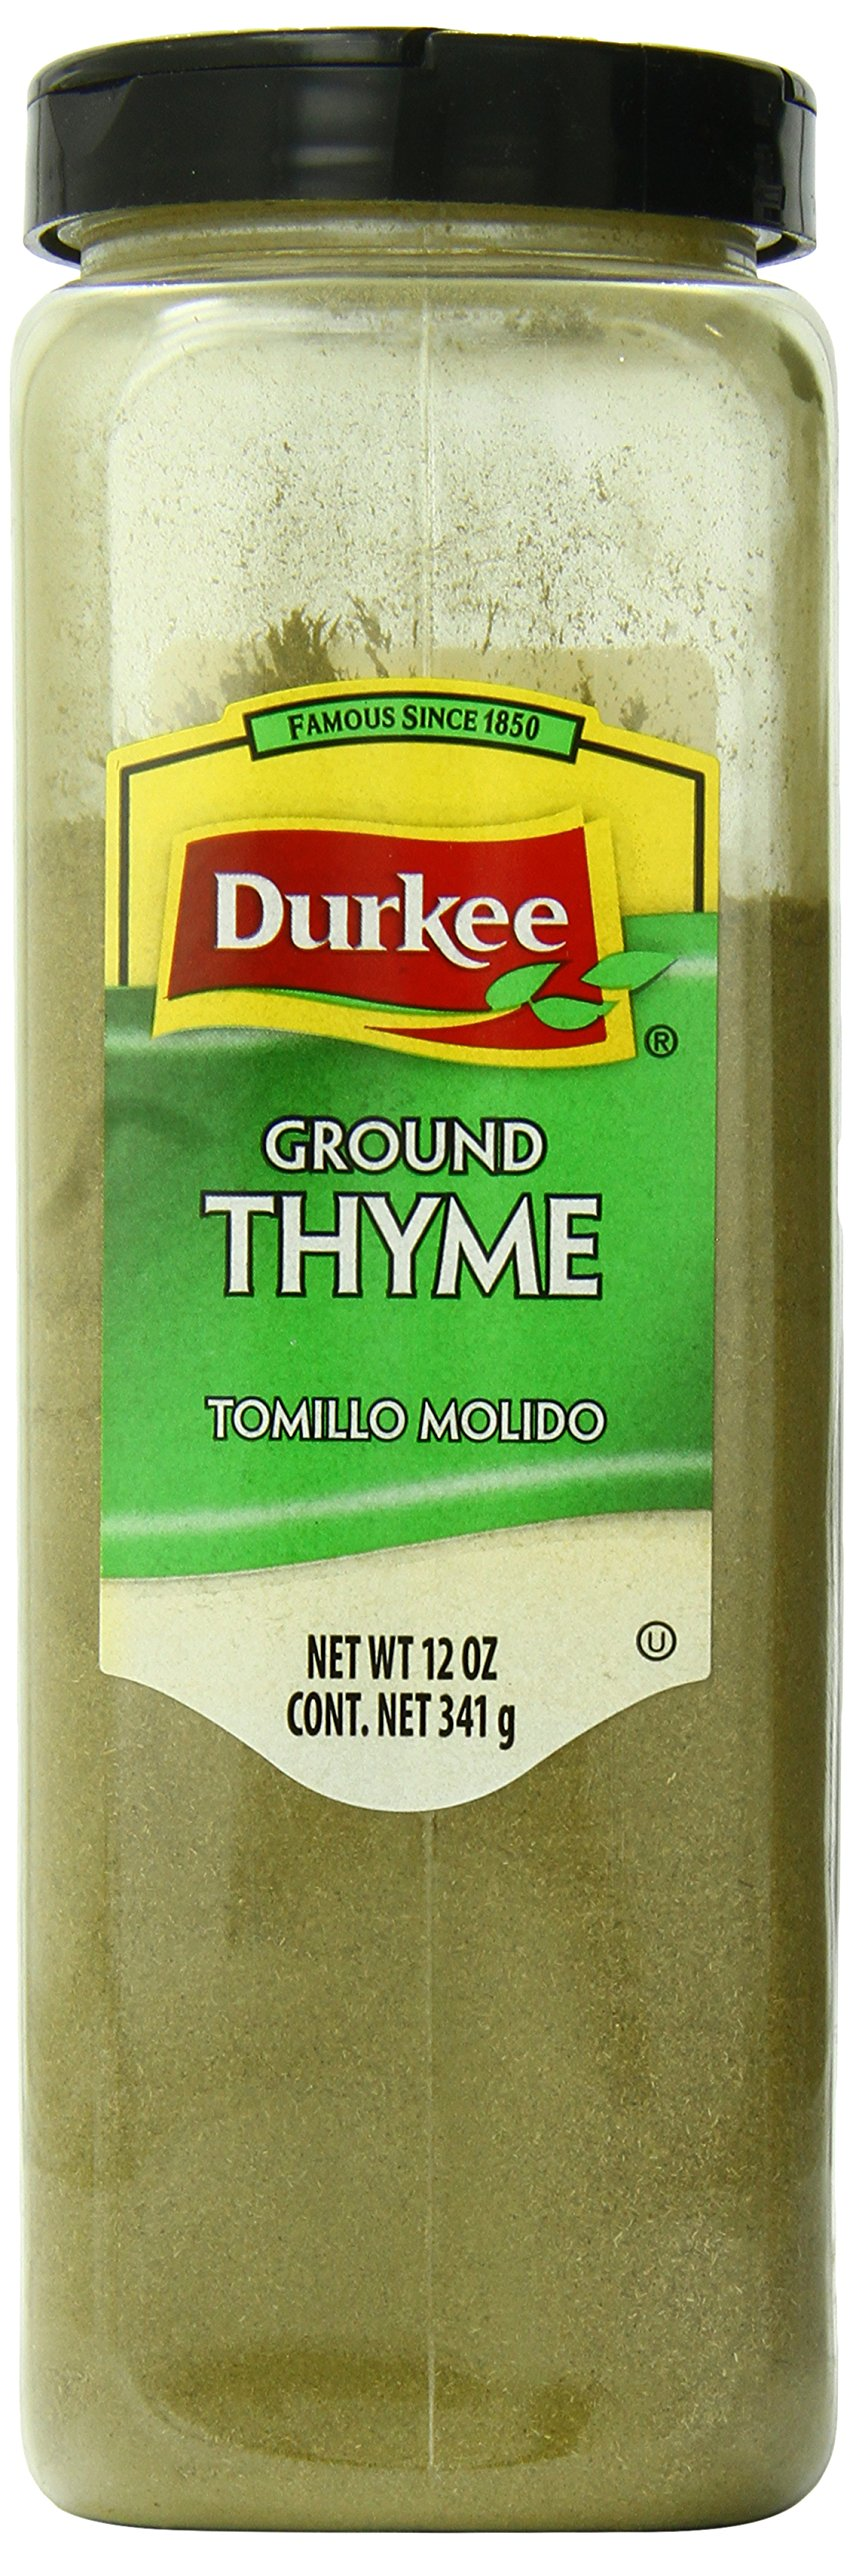 Durkee Ground Thyme, 12-Ounce